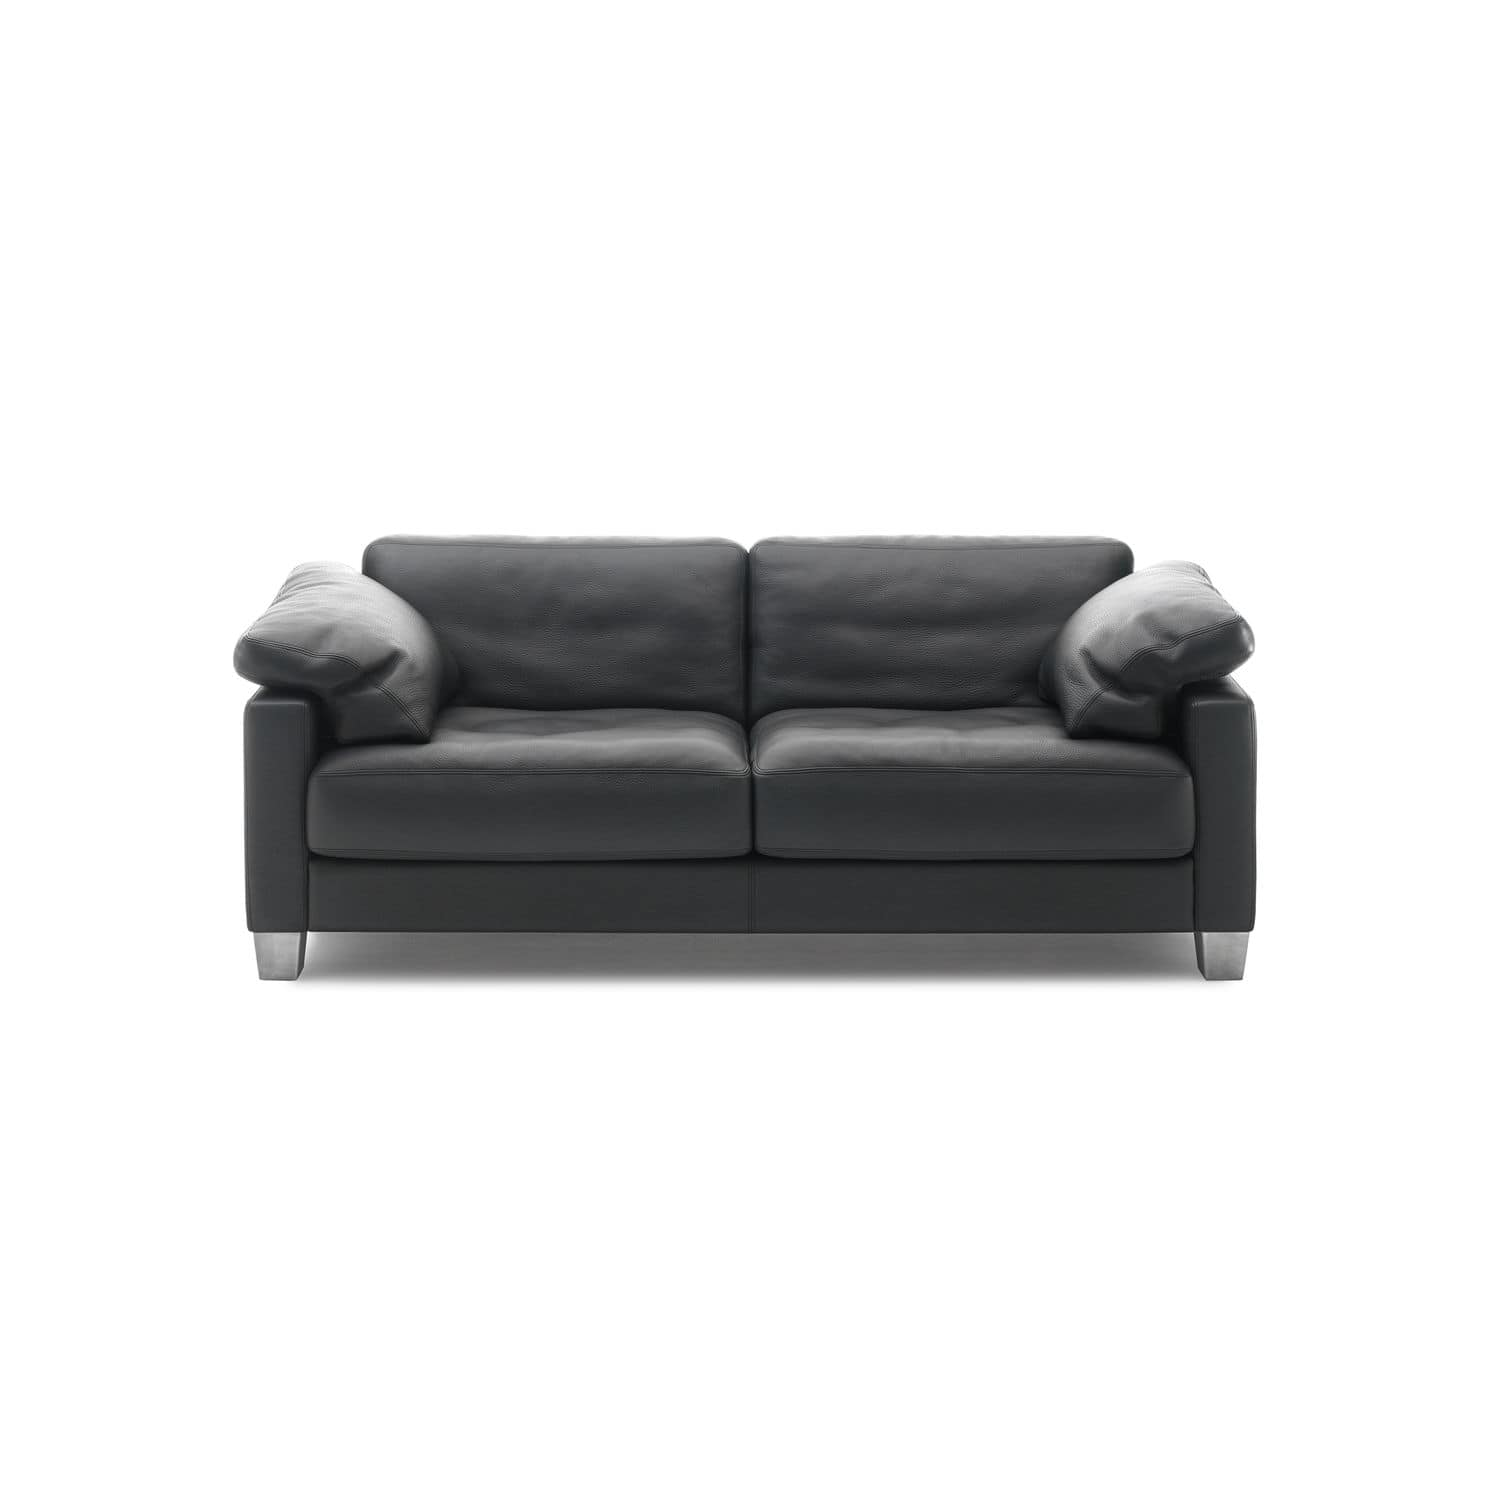 Contemporary sofa leather 2 seater 3 seater DS 17 de Sede AG